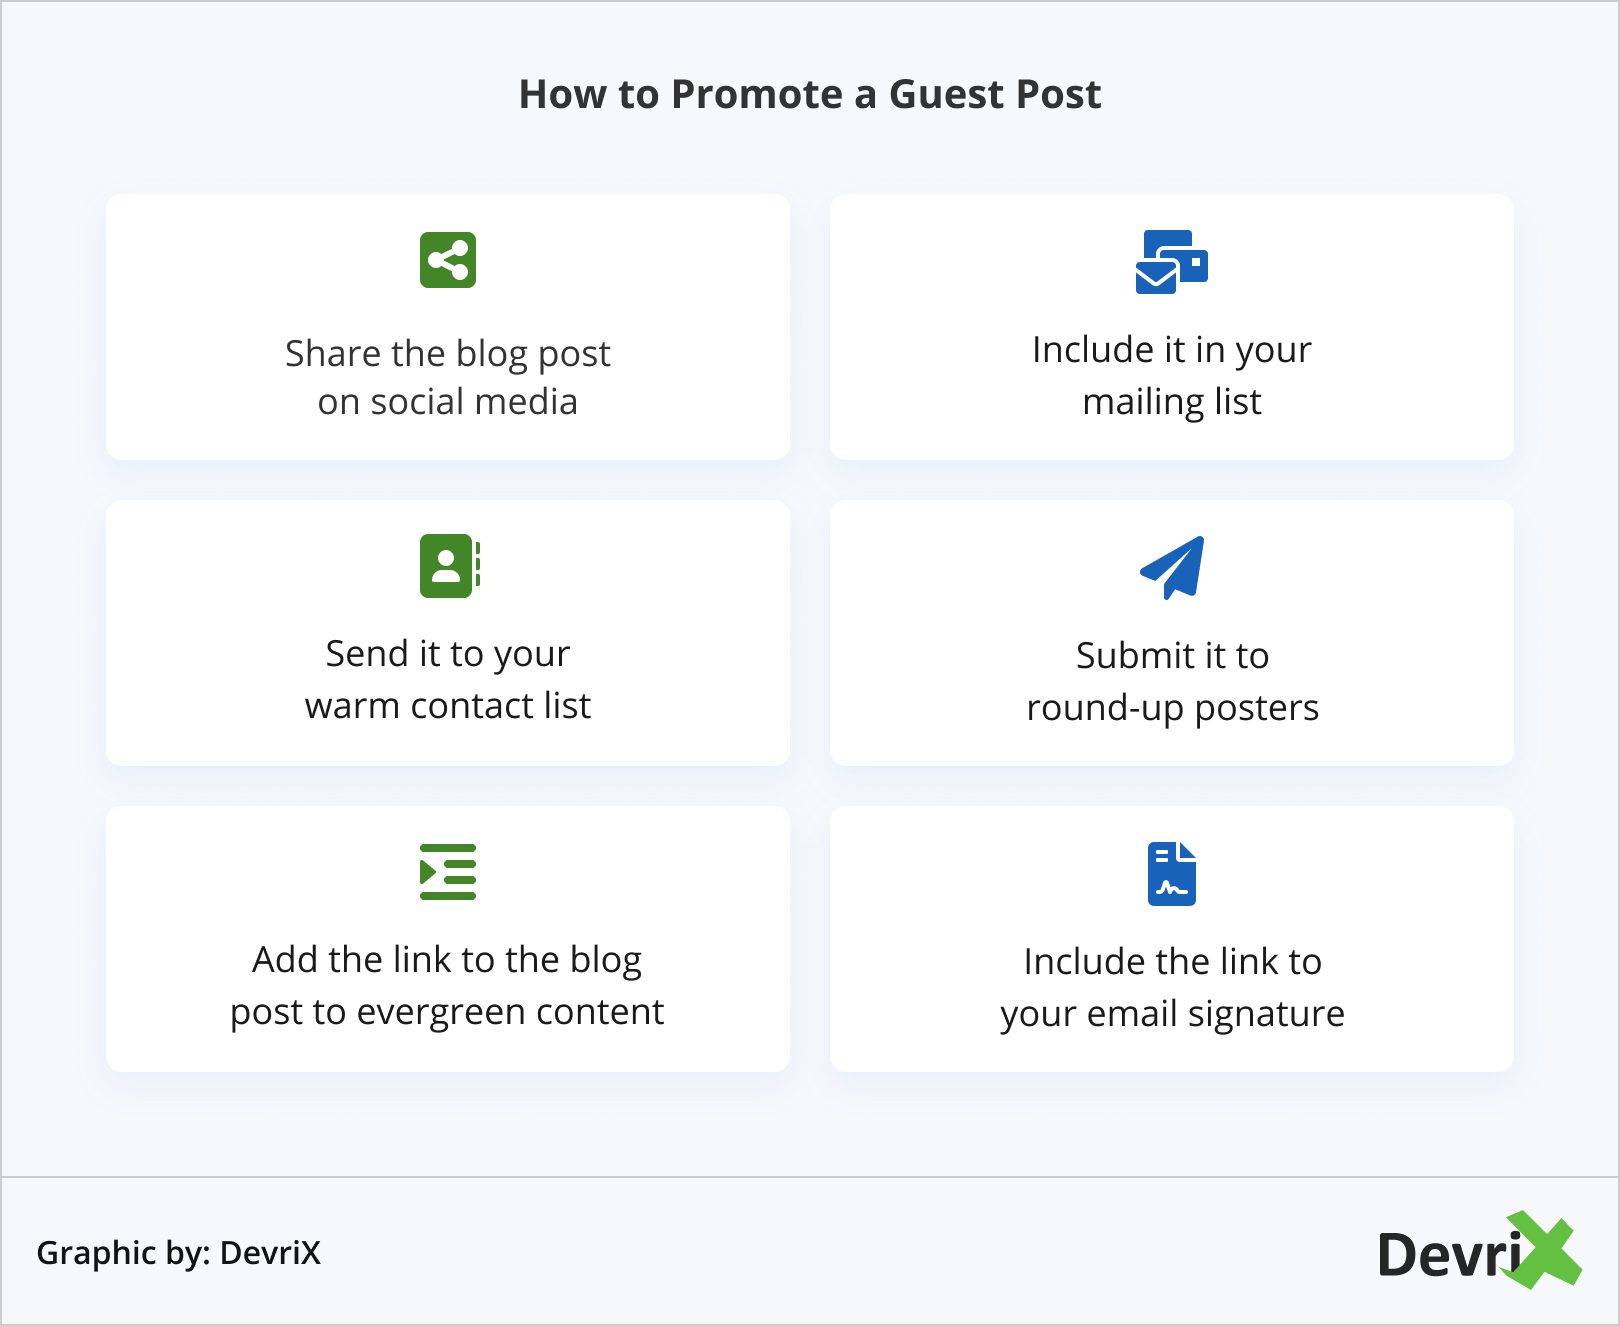 How to Promote a Guest Post